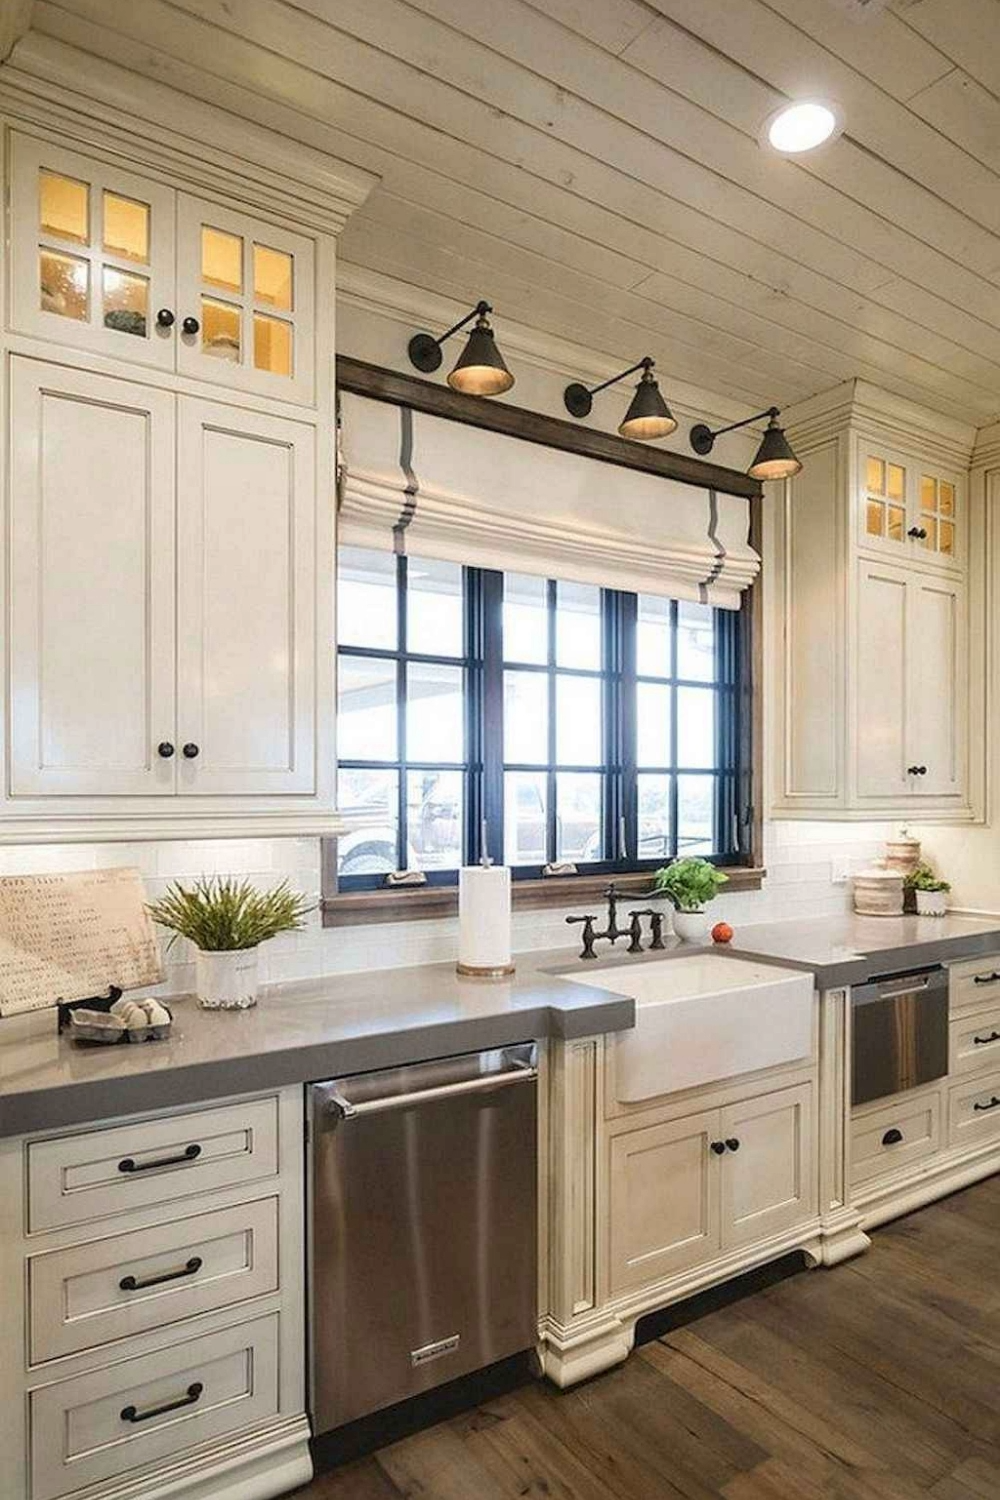 90+ Elegant White Kitchen Cabinets Decor Ideas For Farmhouse Style Design - Kitchen cabinetry isn't just for storage. It's a necessary component to your kitchen's type when doing a kitchen transform. Cabinetry is the crown jewel that brings every part collectively. #kitchen #cabinets